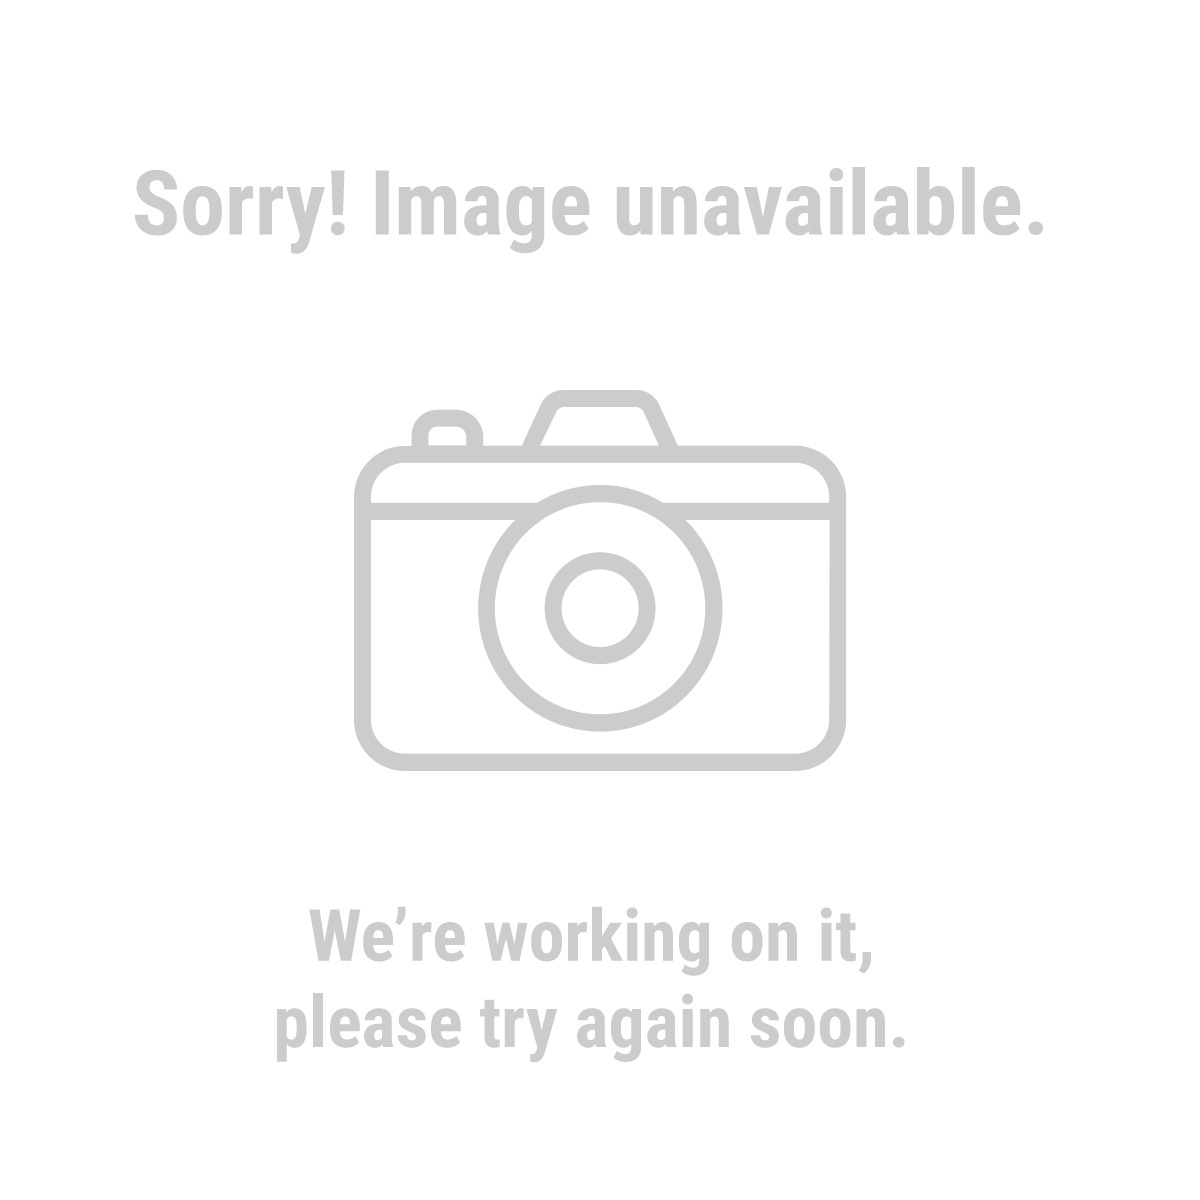 Chicago Electric Power Tools 61741 1/2 in. Heavy Duty Variable Speed Reversible Drill